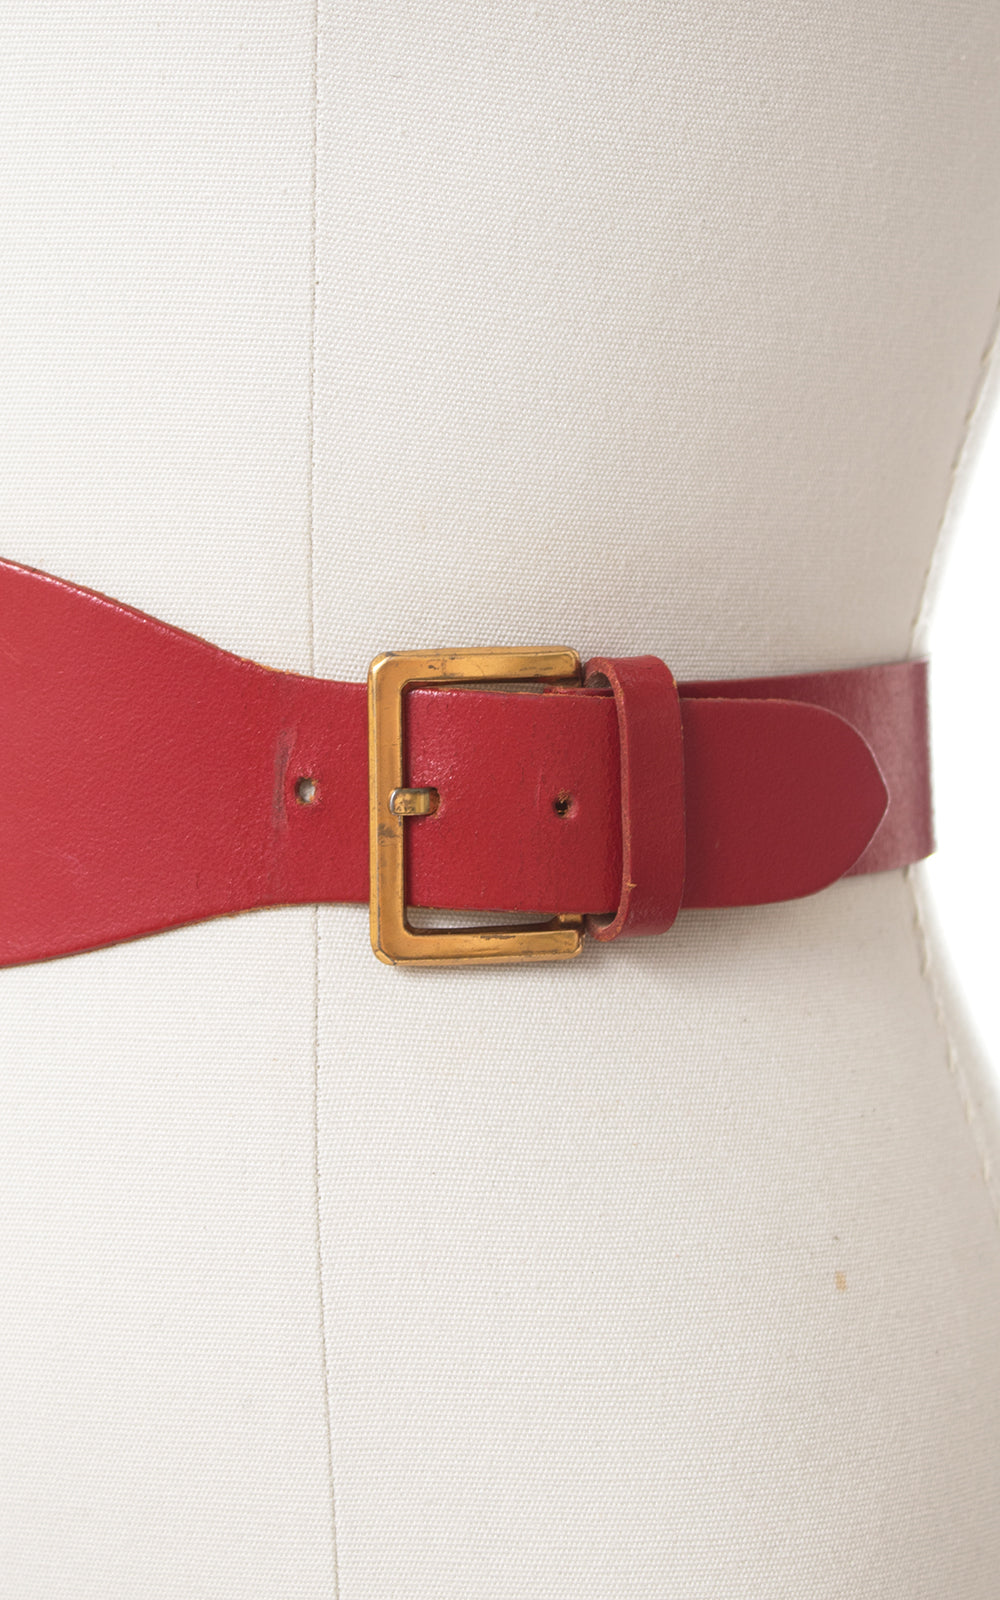 1950s Double Buckle Red Leather Cinch Belt